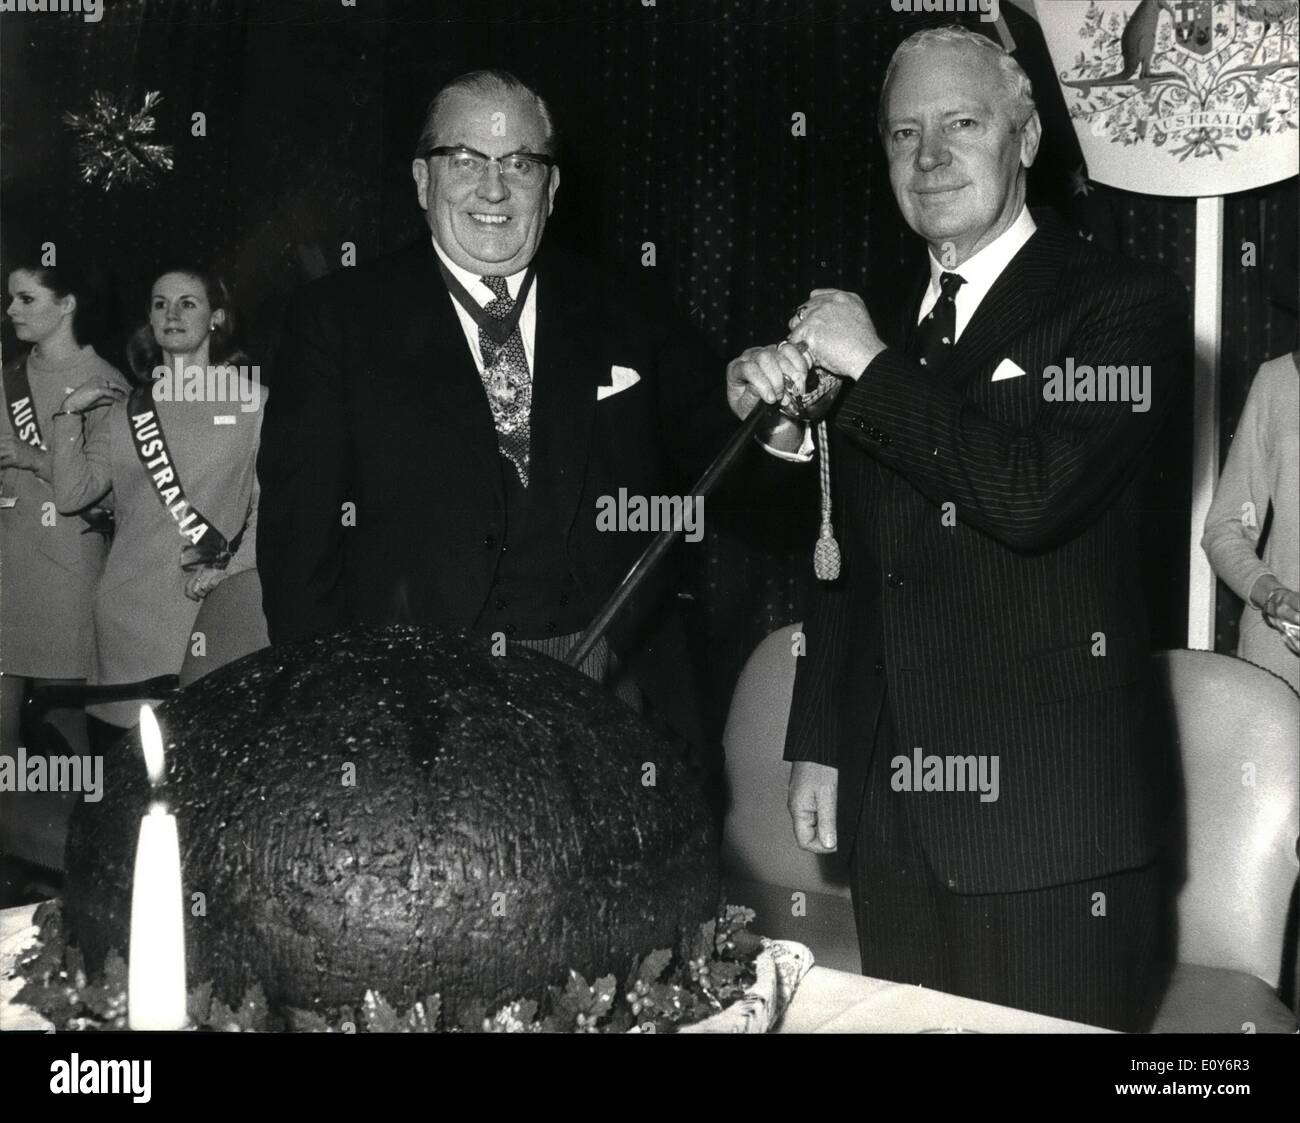 Dec. 12, 1968 - Lord Mayor presented with Giant Christmas Pudding.: The Lord Mayor of London, Sir Charles Trinder, was at Australia House today presented with a giant 160lb. Christmas Pudding (enough fir 800) by the high Commissioner for Australia, Sir Alexander Downer. The pudding is a gift to the people of the UK from the Dried Fruit Growers of Australia and, in fact, contains 45 lbs of Australian sultanas, 17 lbs of Australian currants, 10 lbs of Australian raisins and a host of other good things from Down Under - Stock Image